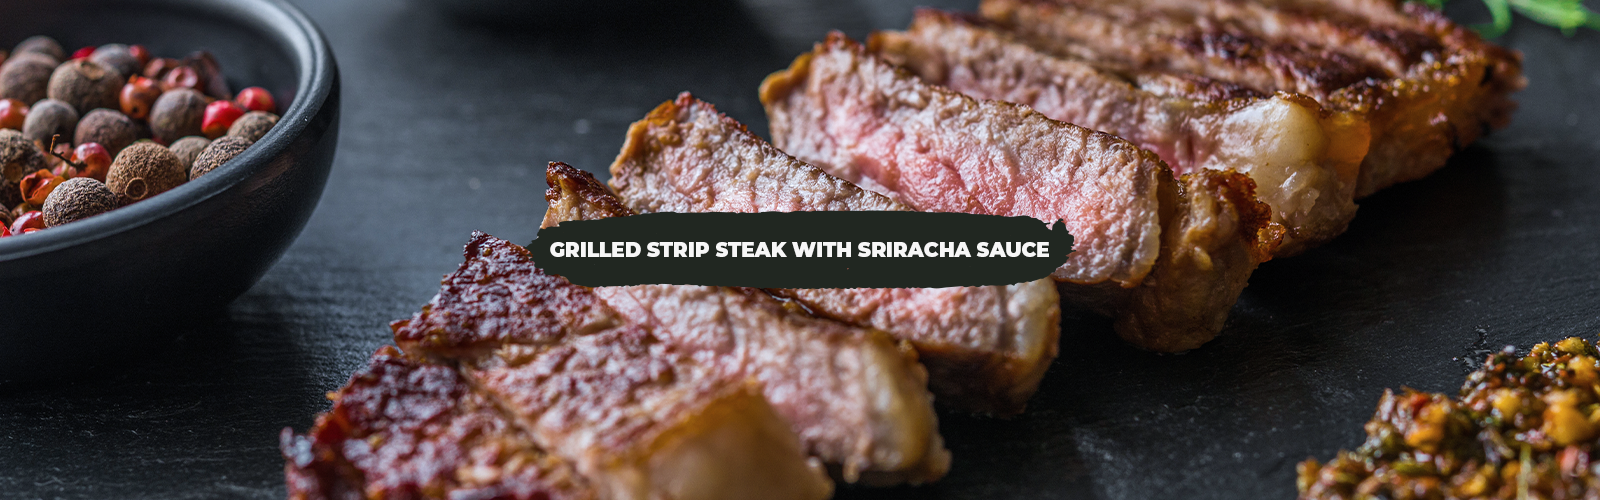 Grilled Strip Steak With Sriracha Sauce